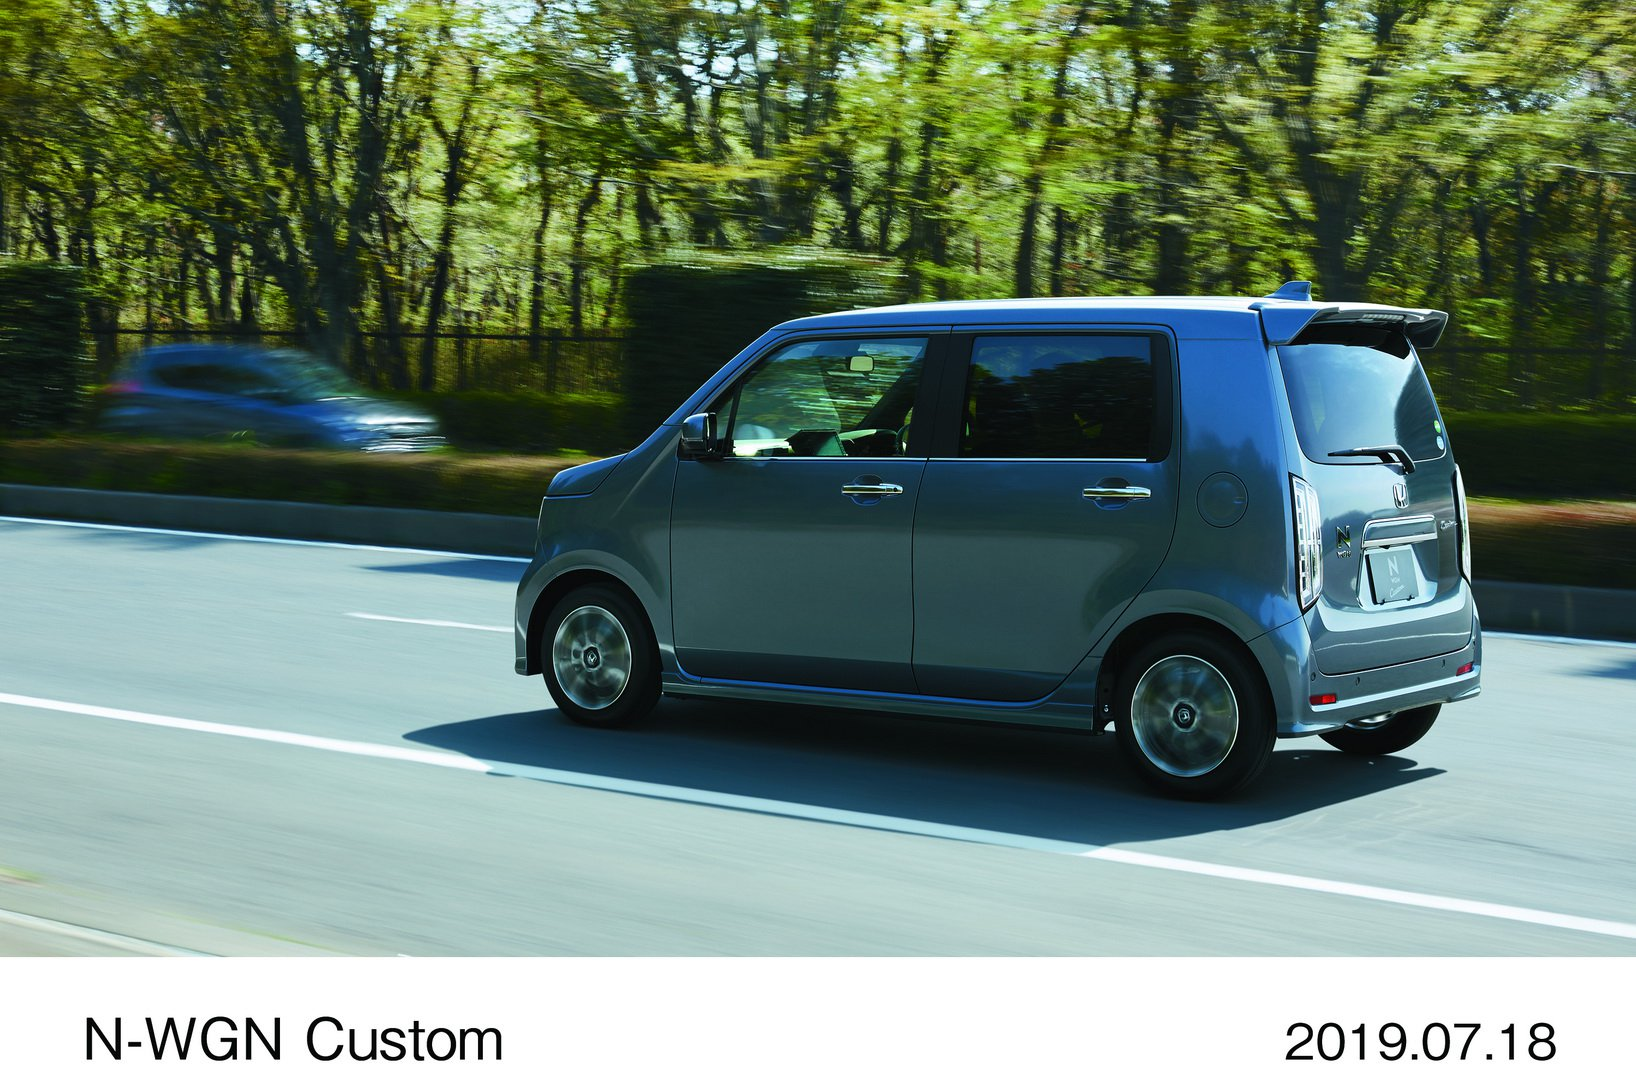 With 242,000 copies sold in 2018 alone, the Honda N-Box kei car is a true bestseller on its home market of Japan. Its sibling, the N-WGN, pales in comparison with only 63,000 vehicles sold. It looks like Honda has found a simple way to remedy the situation, though.